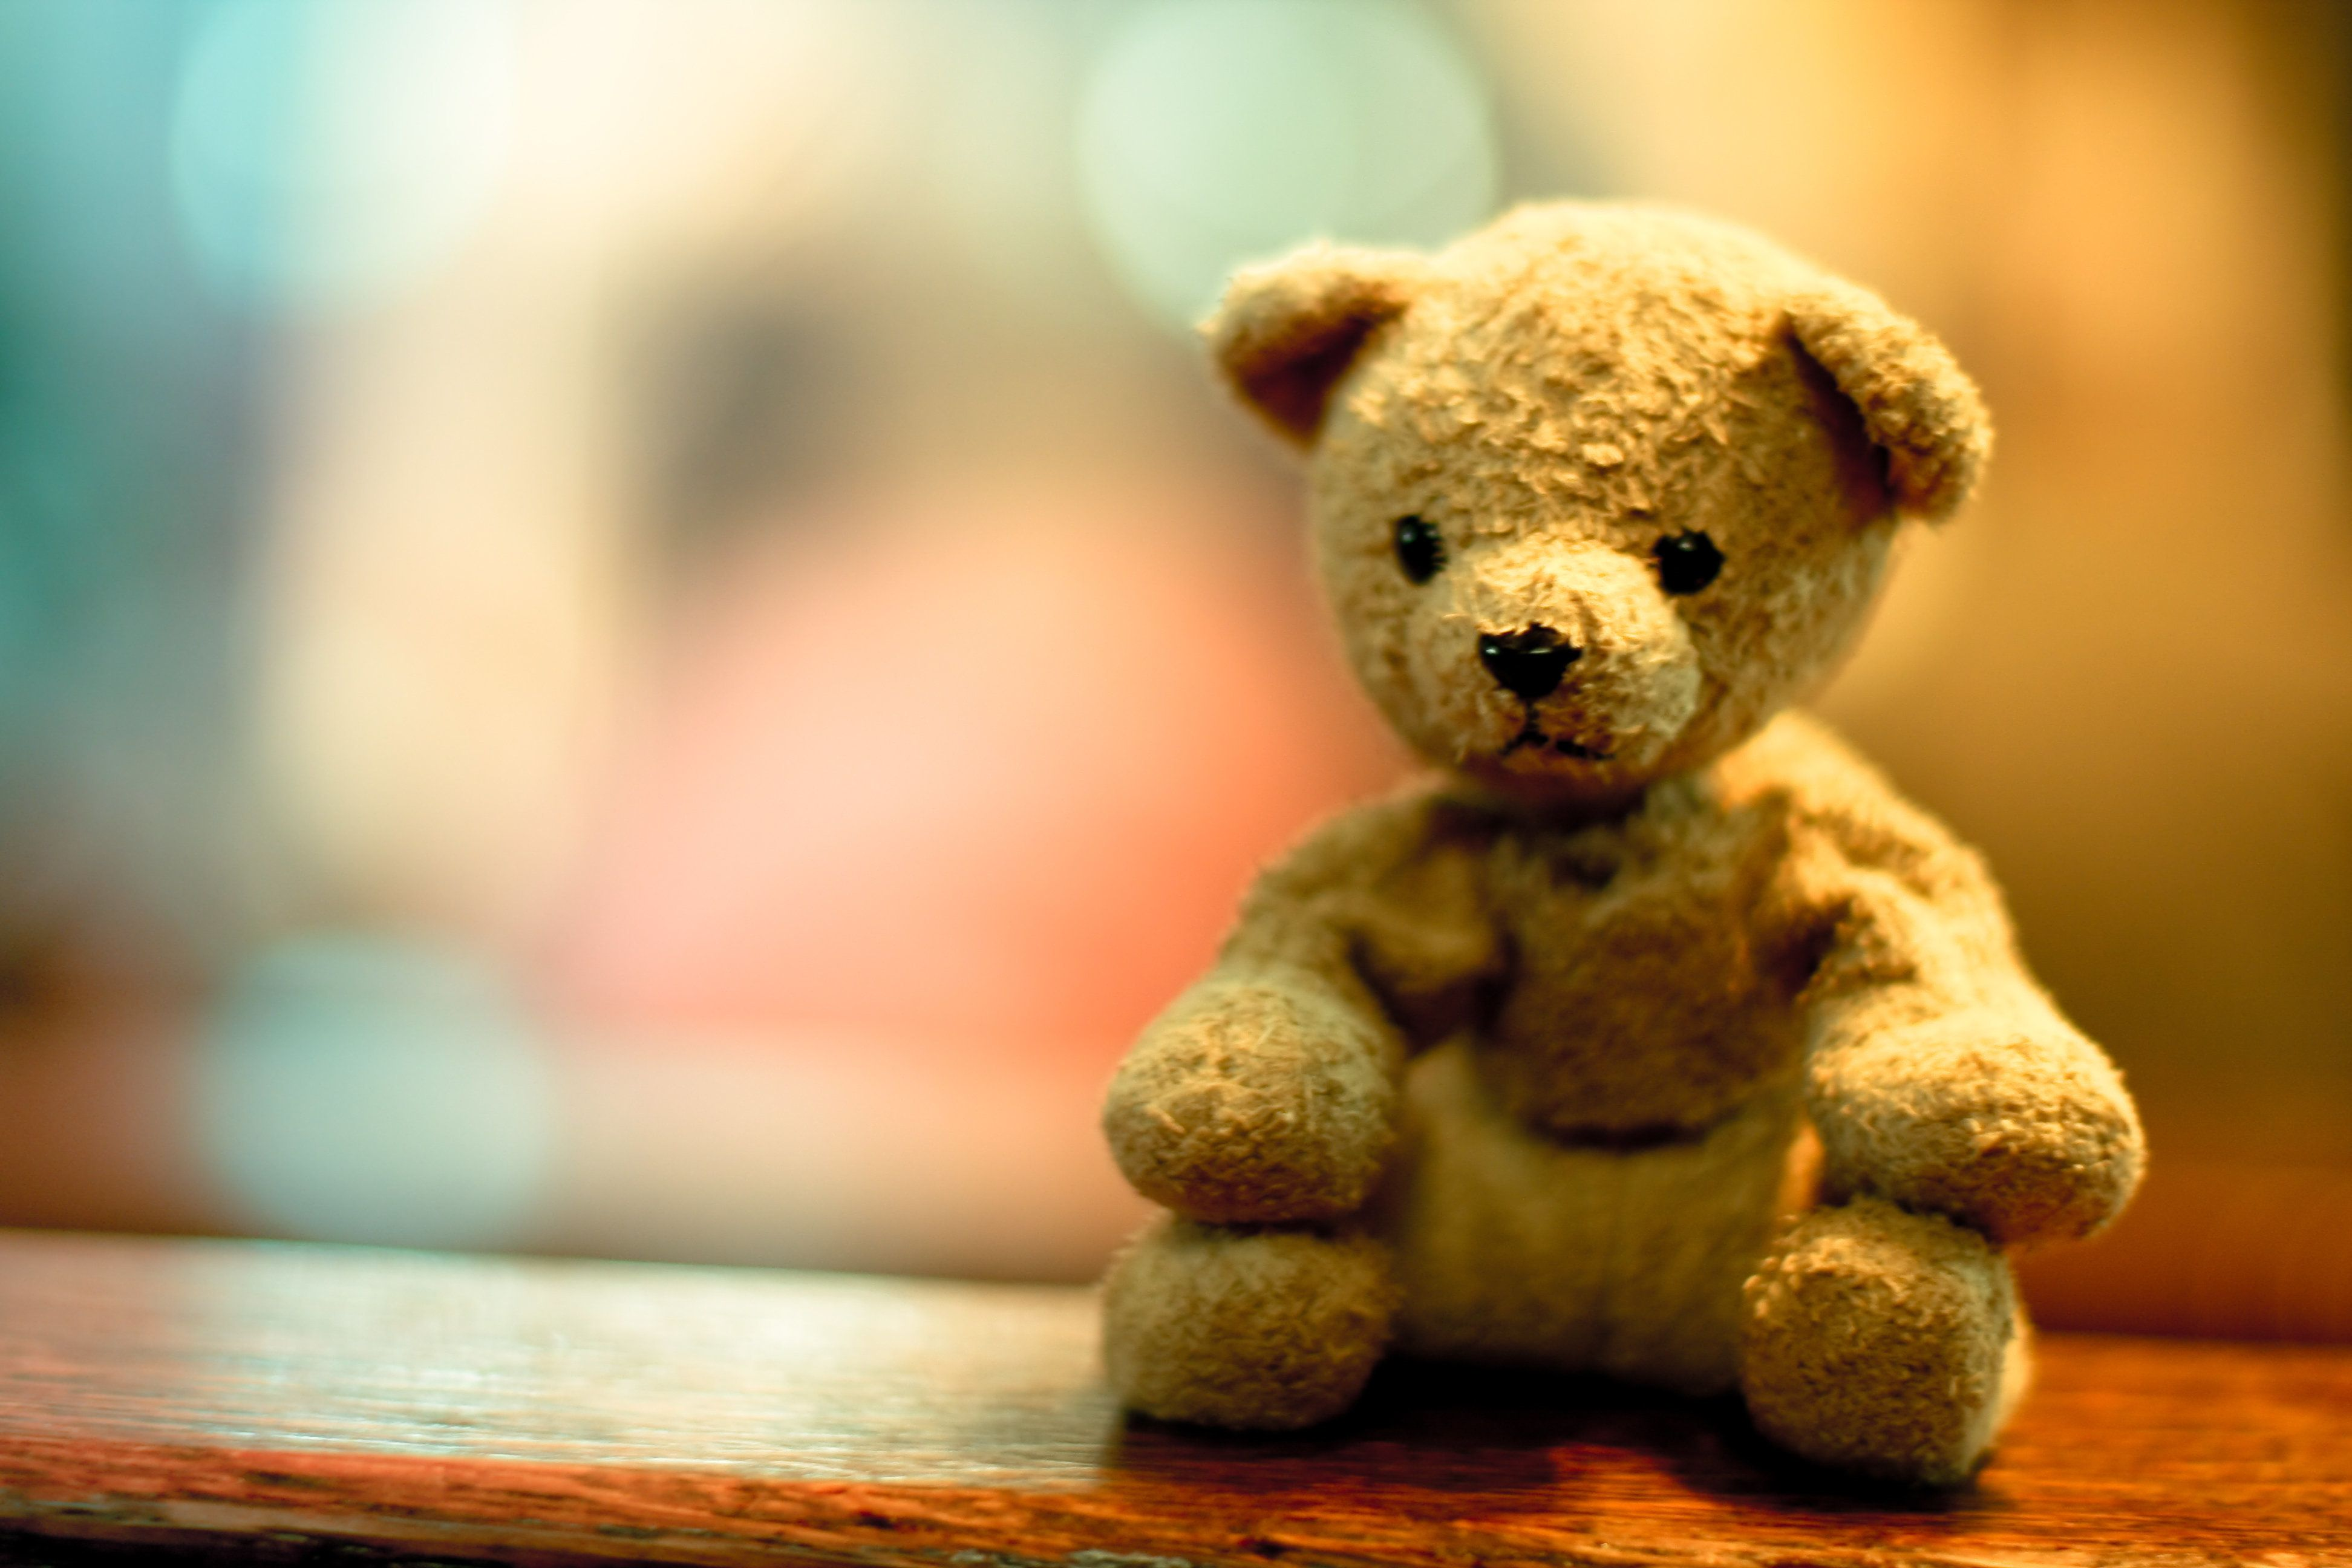 Teddy bears were so dubbed more than a century ago. Here's their story.